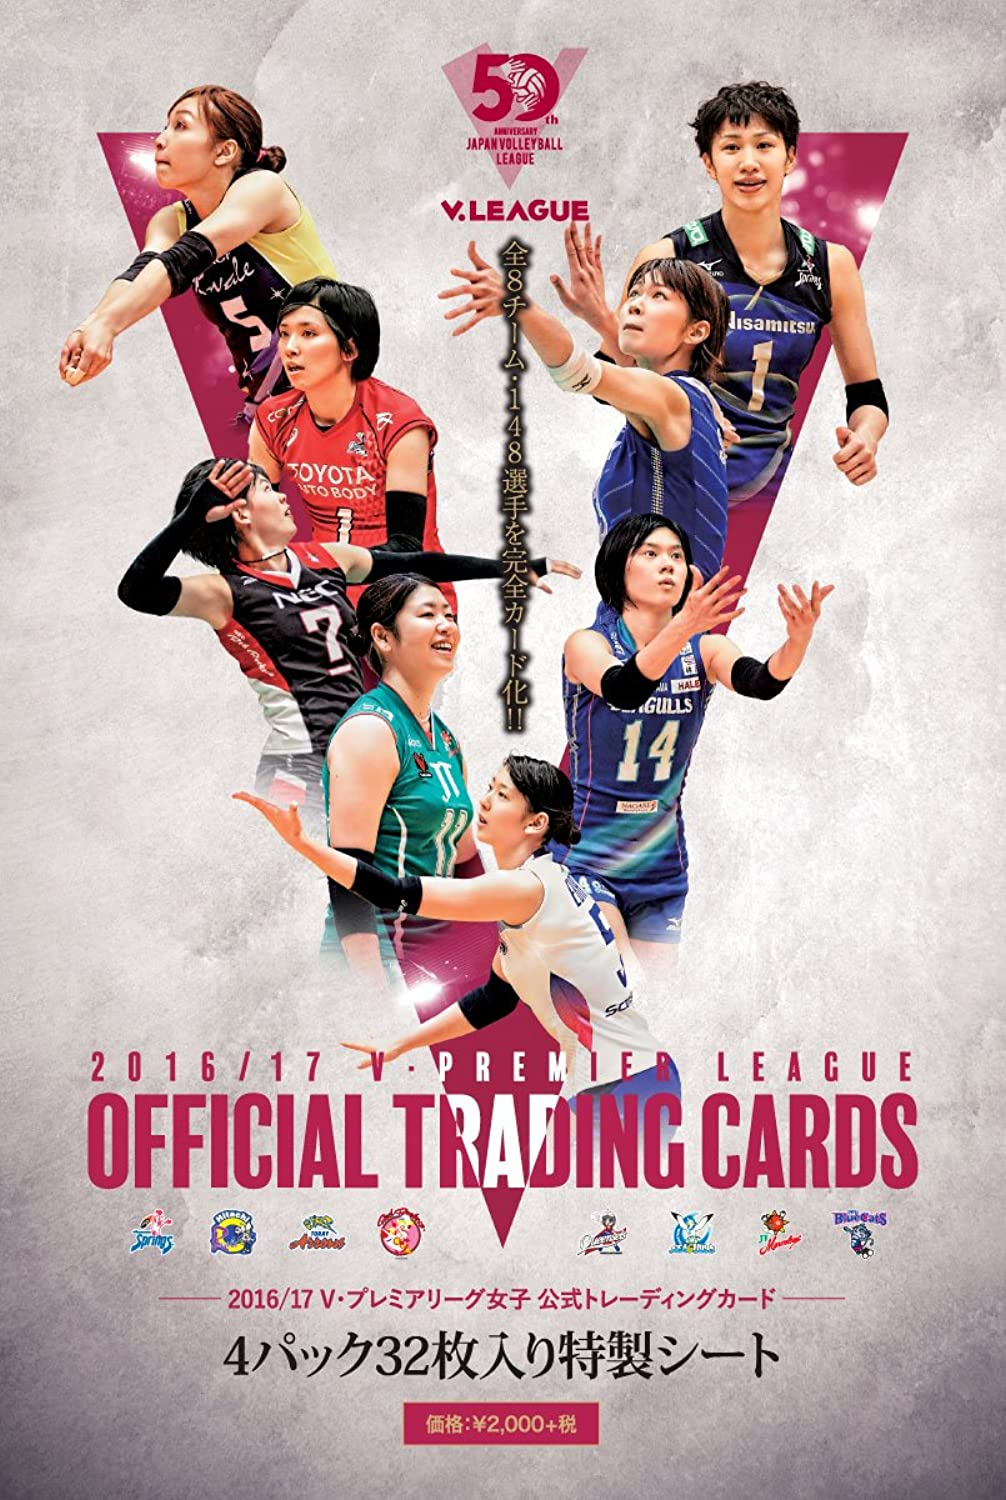 [ .jp limited edition] 2016   17 V Premier League women's trading cards with special pore packs 4 cards in 1 package = 6 with a total 141 type